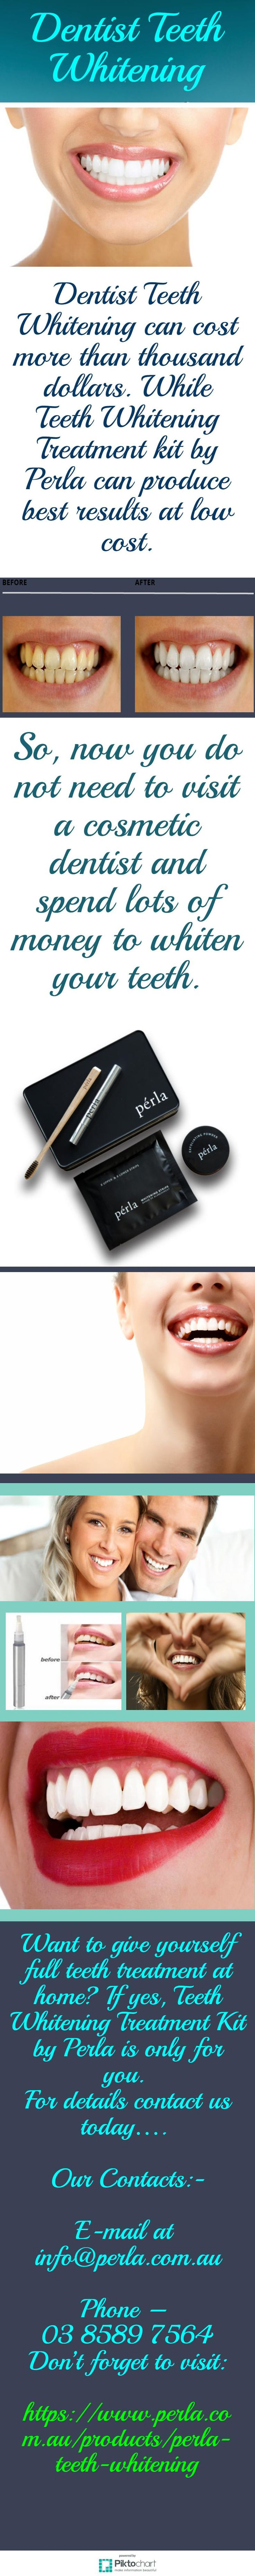 Dentist Teeth Whitening can cost much. On the other hand, with Teeth whitening treatment kit by Perla you can whiten your teeth at home in less cost. For more info, visit link:  http://reviewscircle.com/Teeth-Whitening-4-You?i=homekit